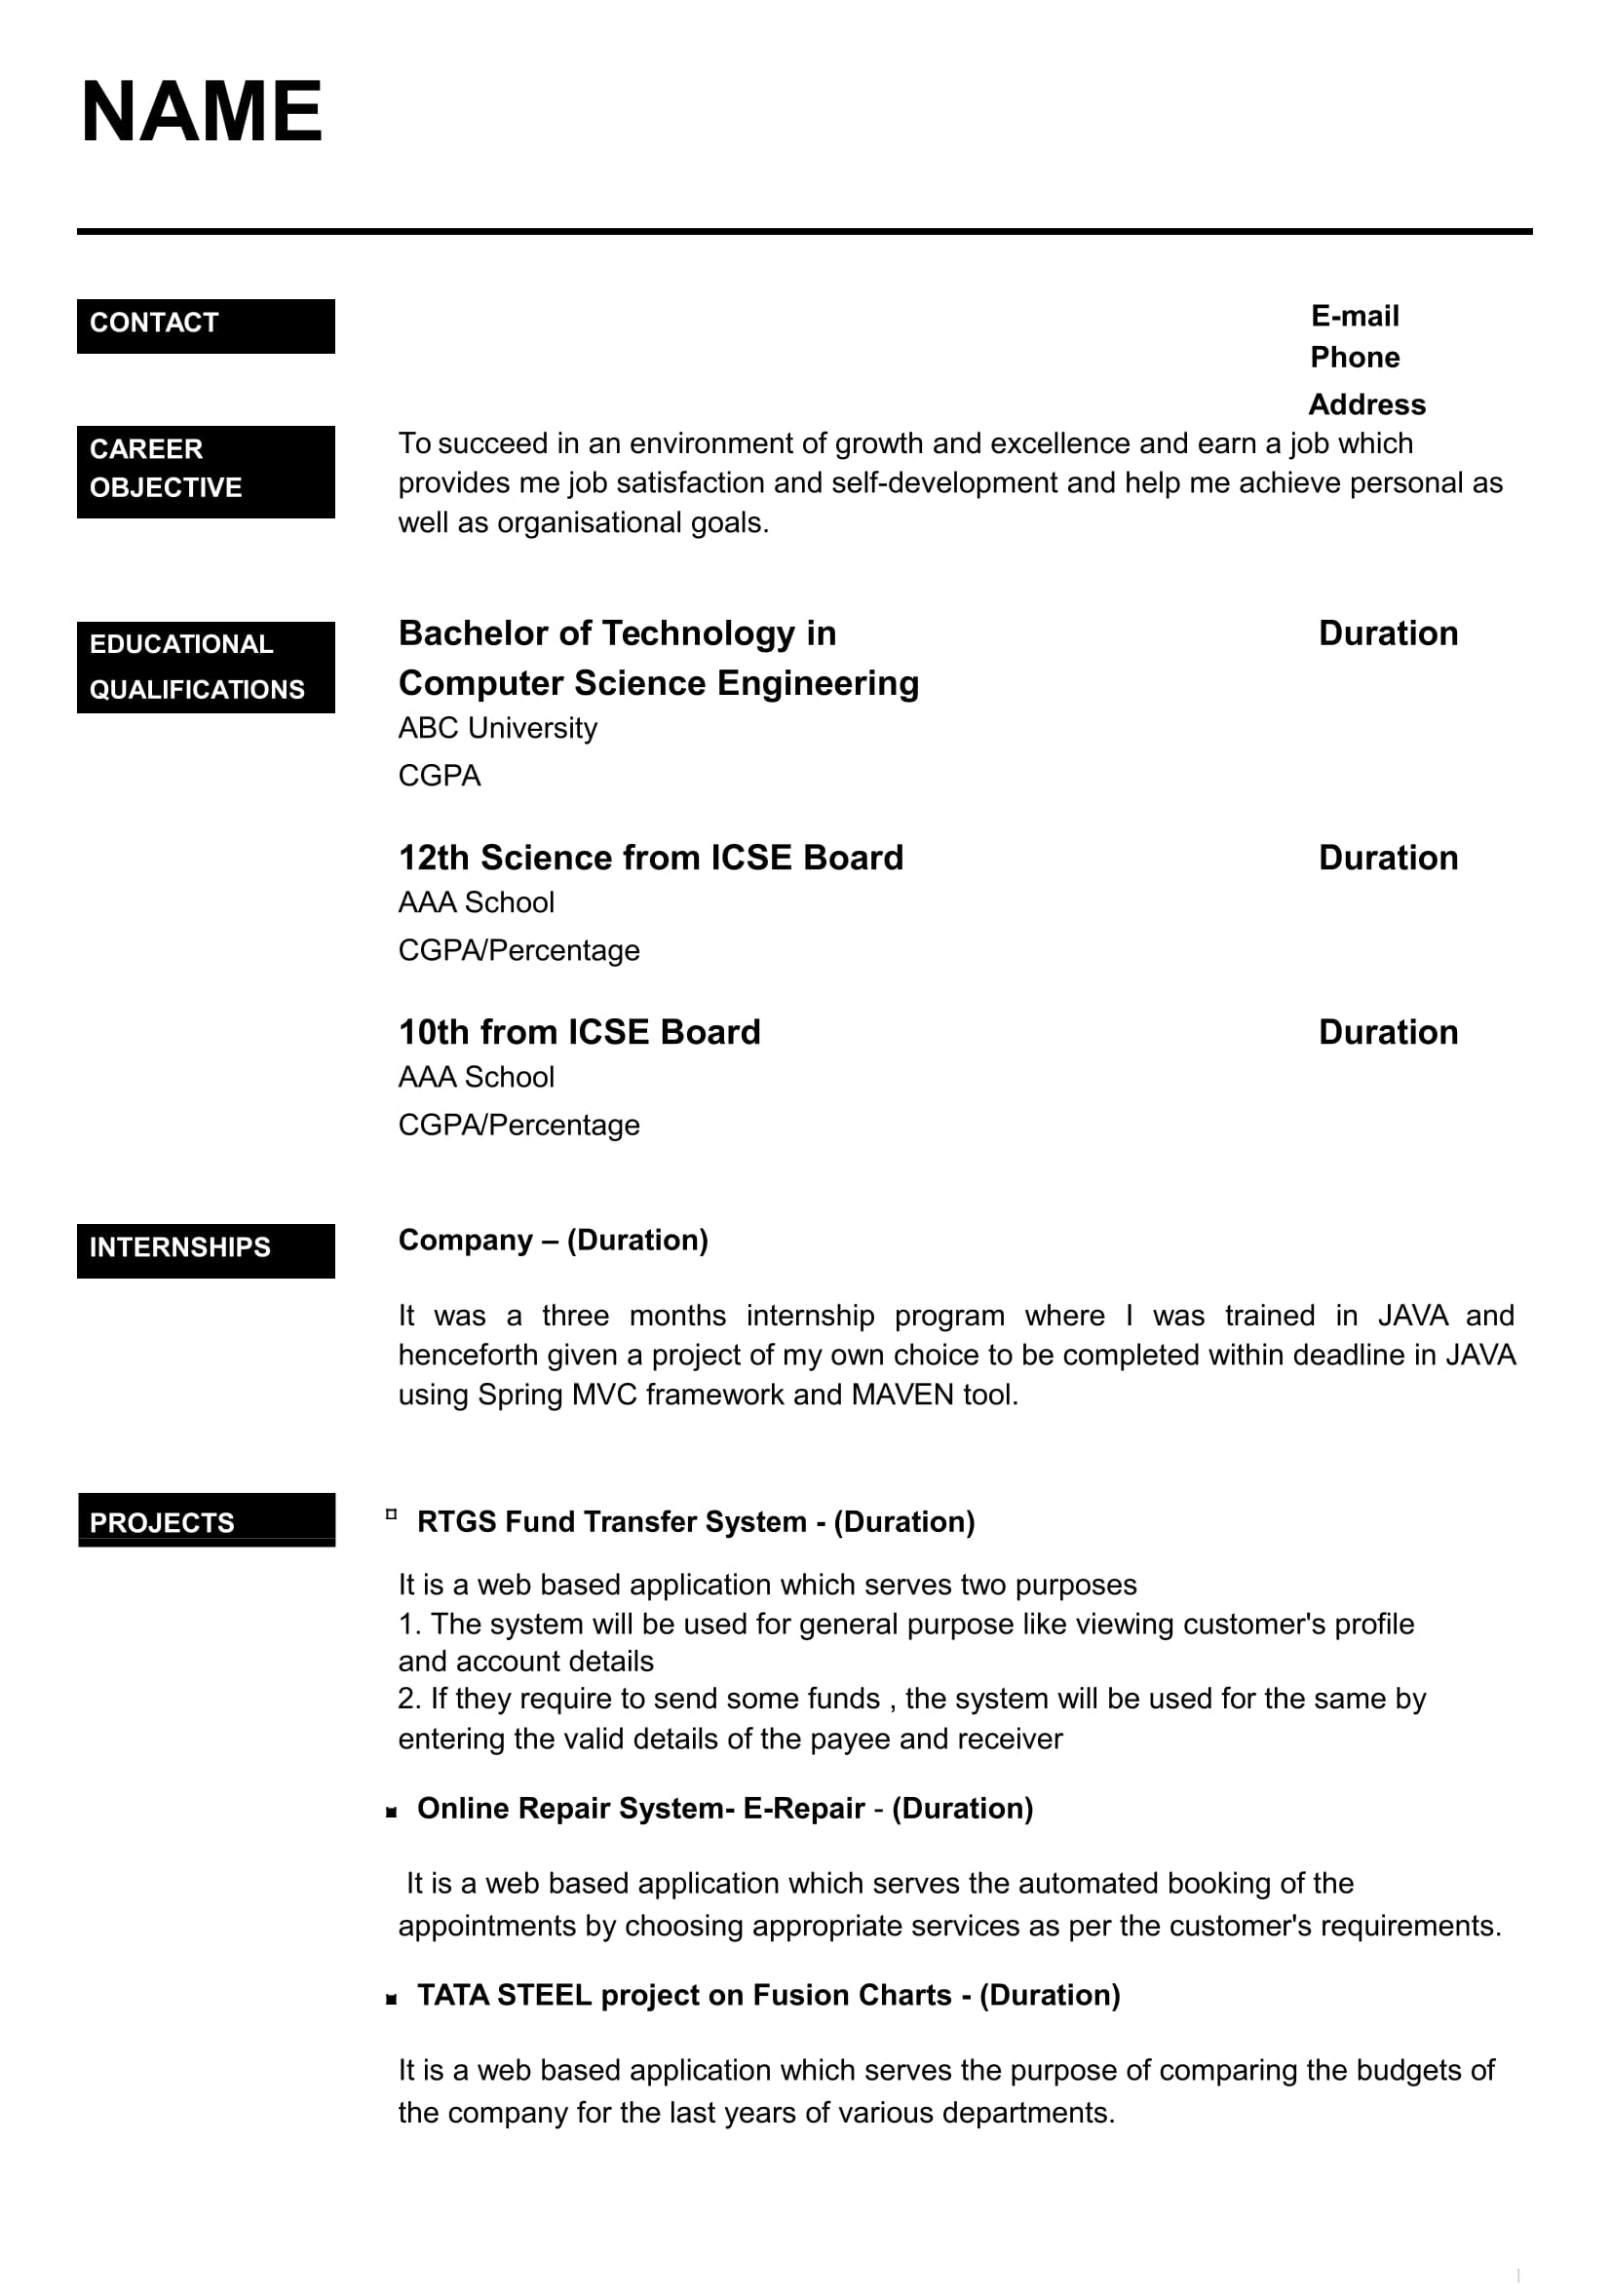 Resume Format For Freshers Job 8 Freshers Resume Samples